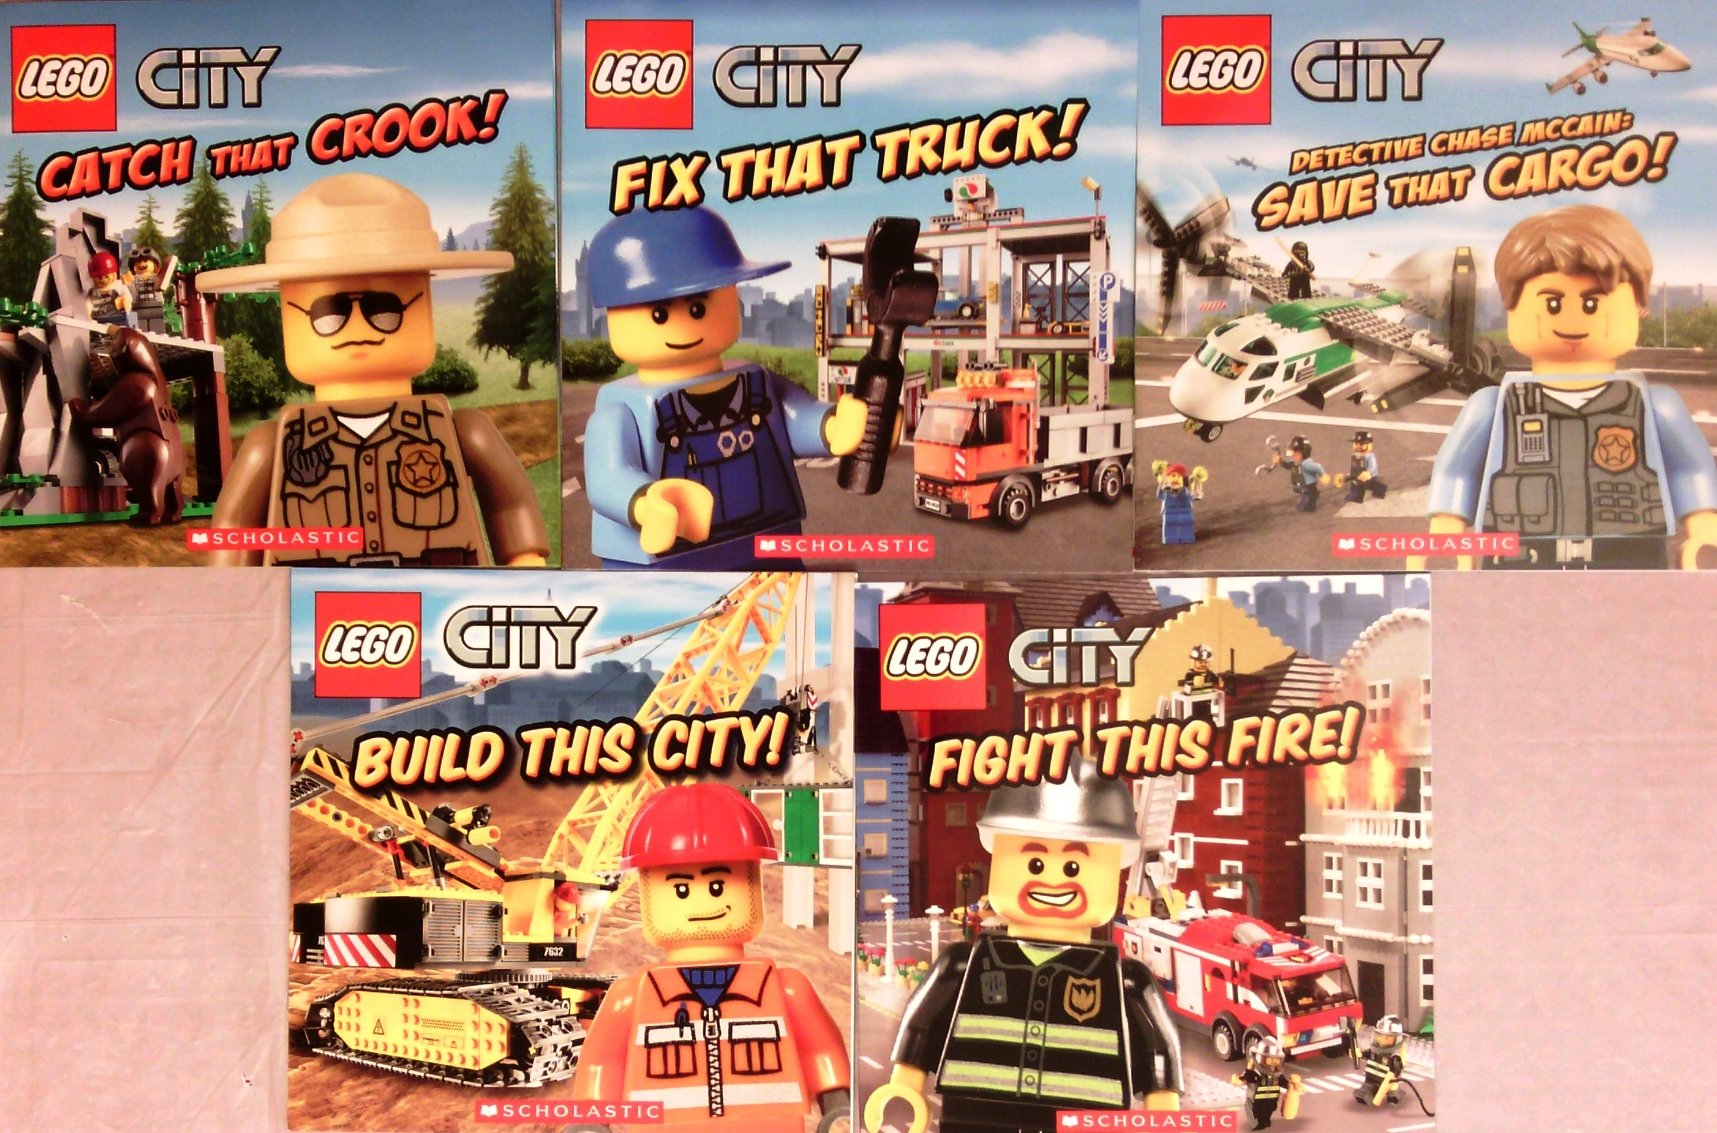 Download Lego City Set of 5 Books: Catch That Crook, Fix That Truck, Detective Chase McCain Save That Cargo, Build This City, Fight This Fire ebook